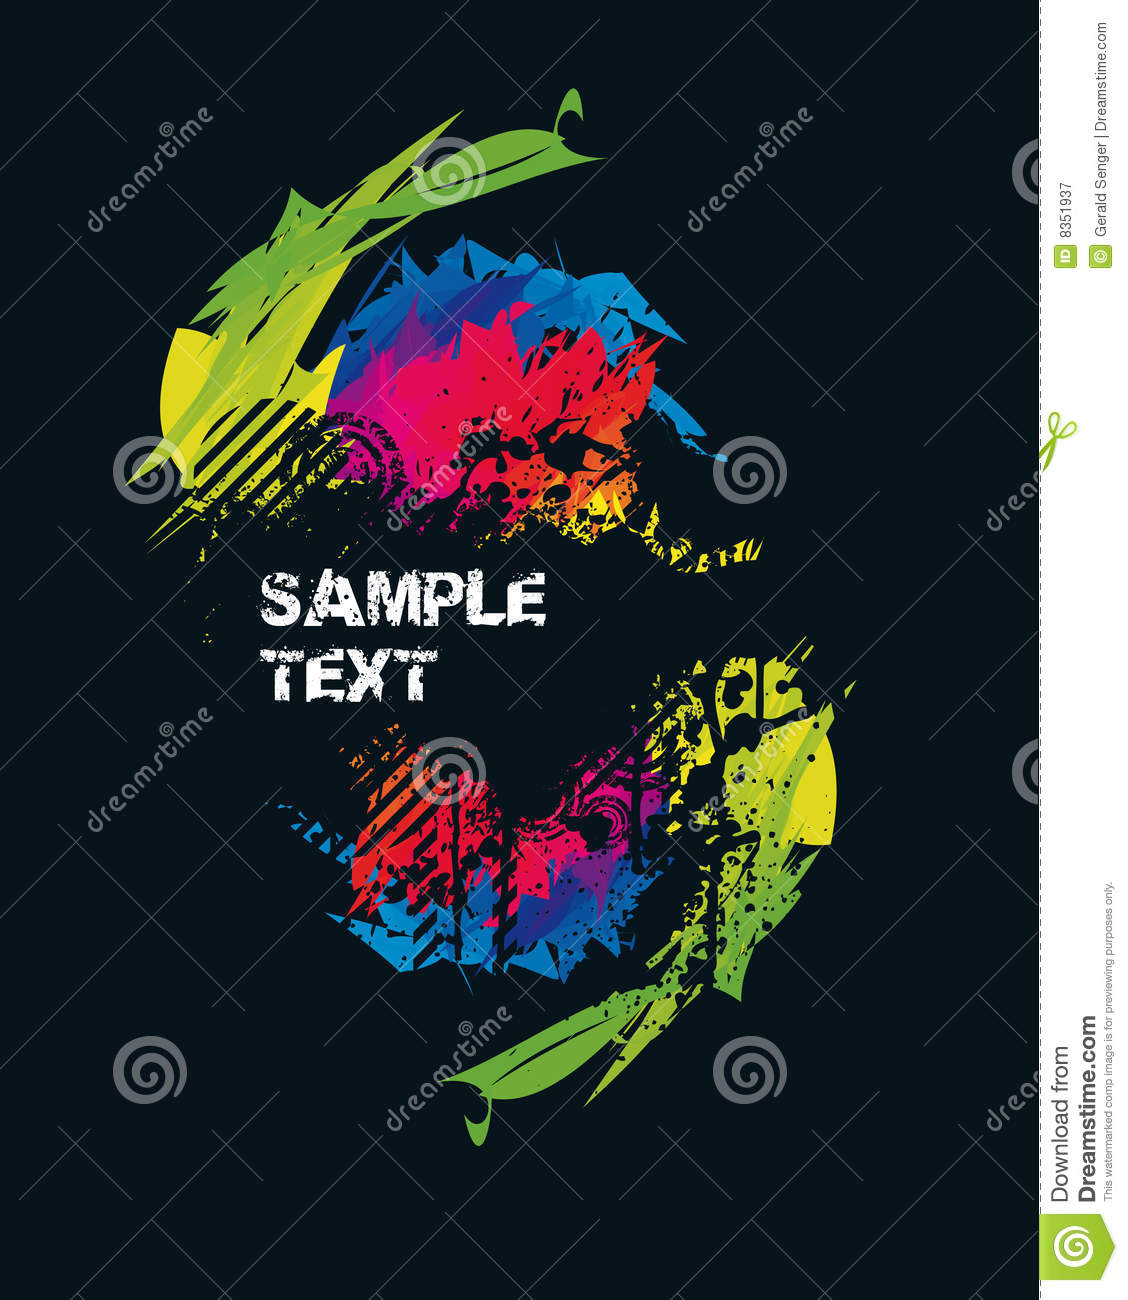 Spectral Party Poster Royalty Free Stock Photography - Image: 8351937